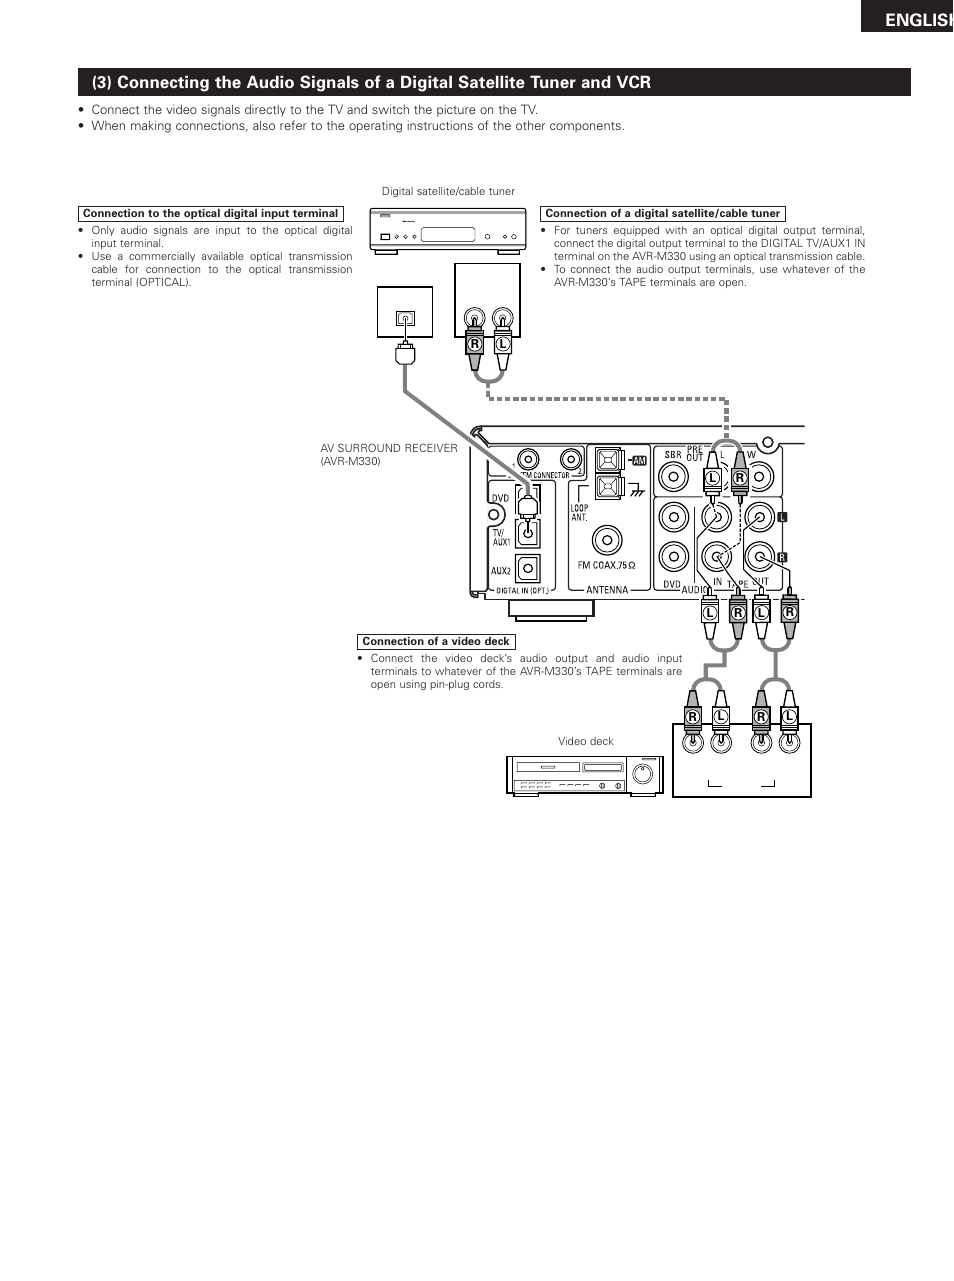 English Denon Dht M330dv User Manual Page 11 60 Wiring Diagrams Of Tv And Home Stereo Components With Av Surround Receiver